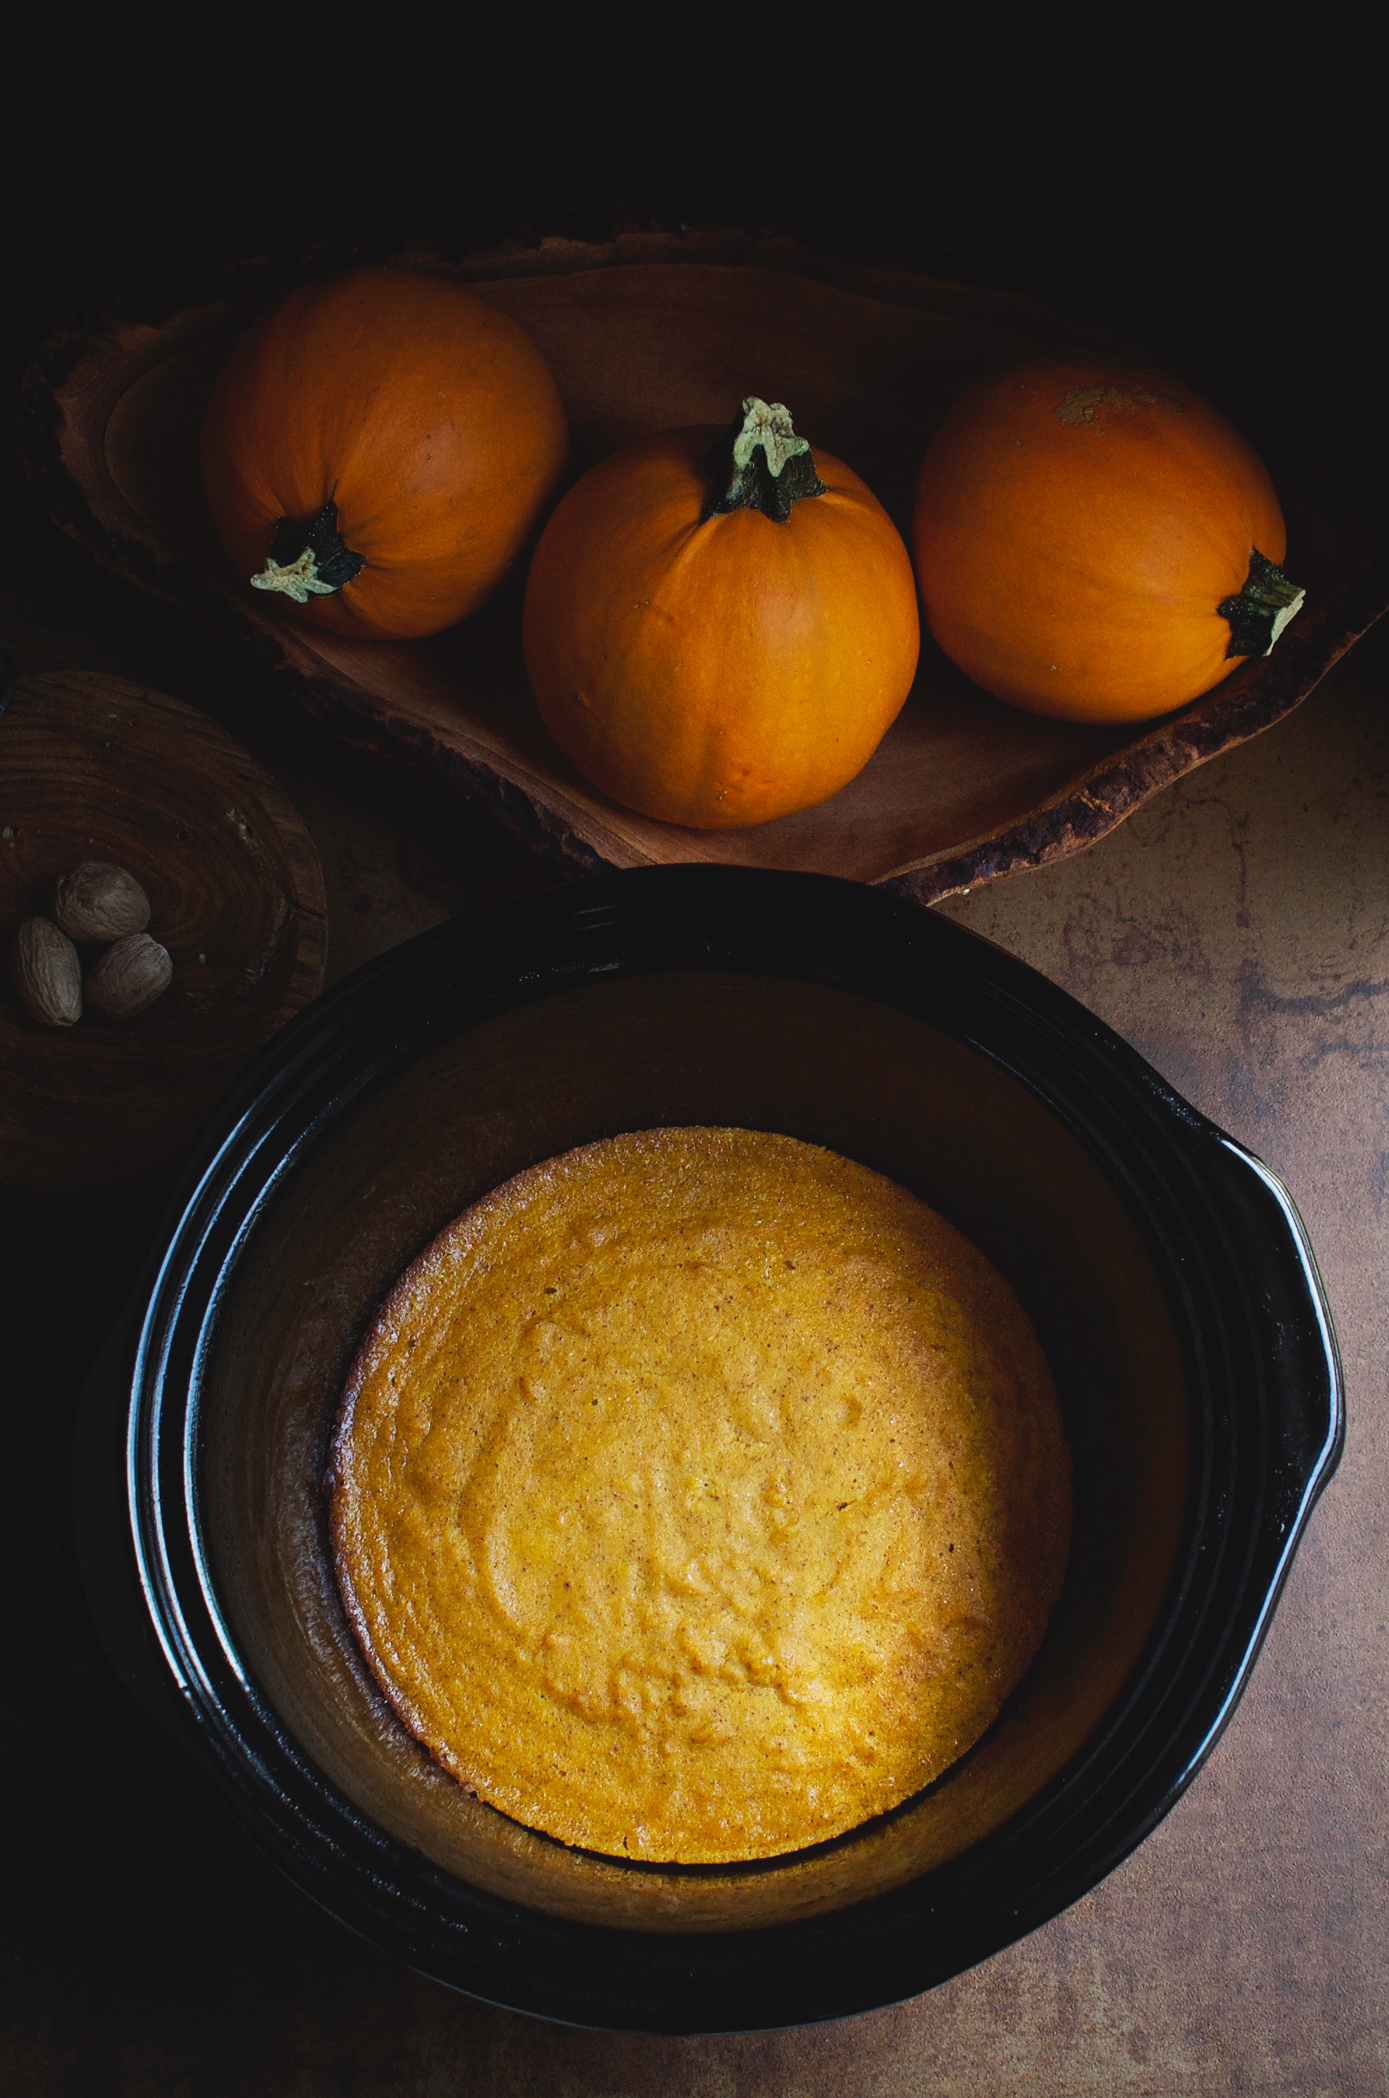 This Low-Carb Slow-Cooker Pumpkin Custard is like pumpkin pie without the crust. It makes a delicious dessert that can work for low-carb, keto, lc/hf, diabetic, gluten-free, grain-free, Paleo, or Banting diets